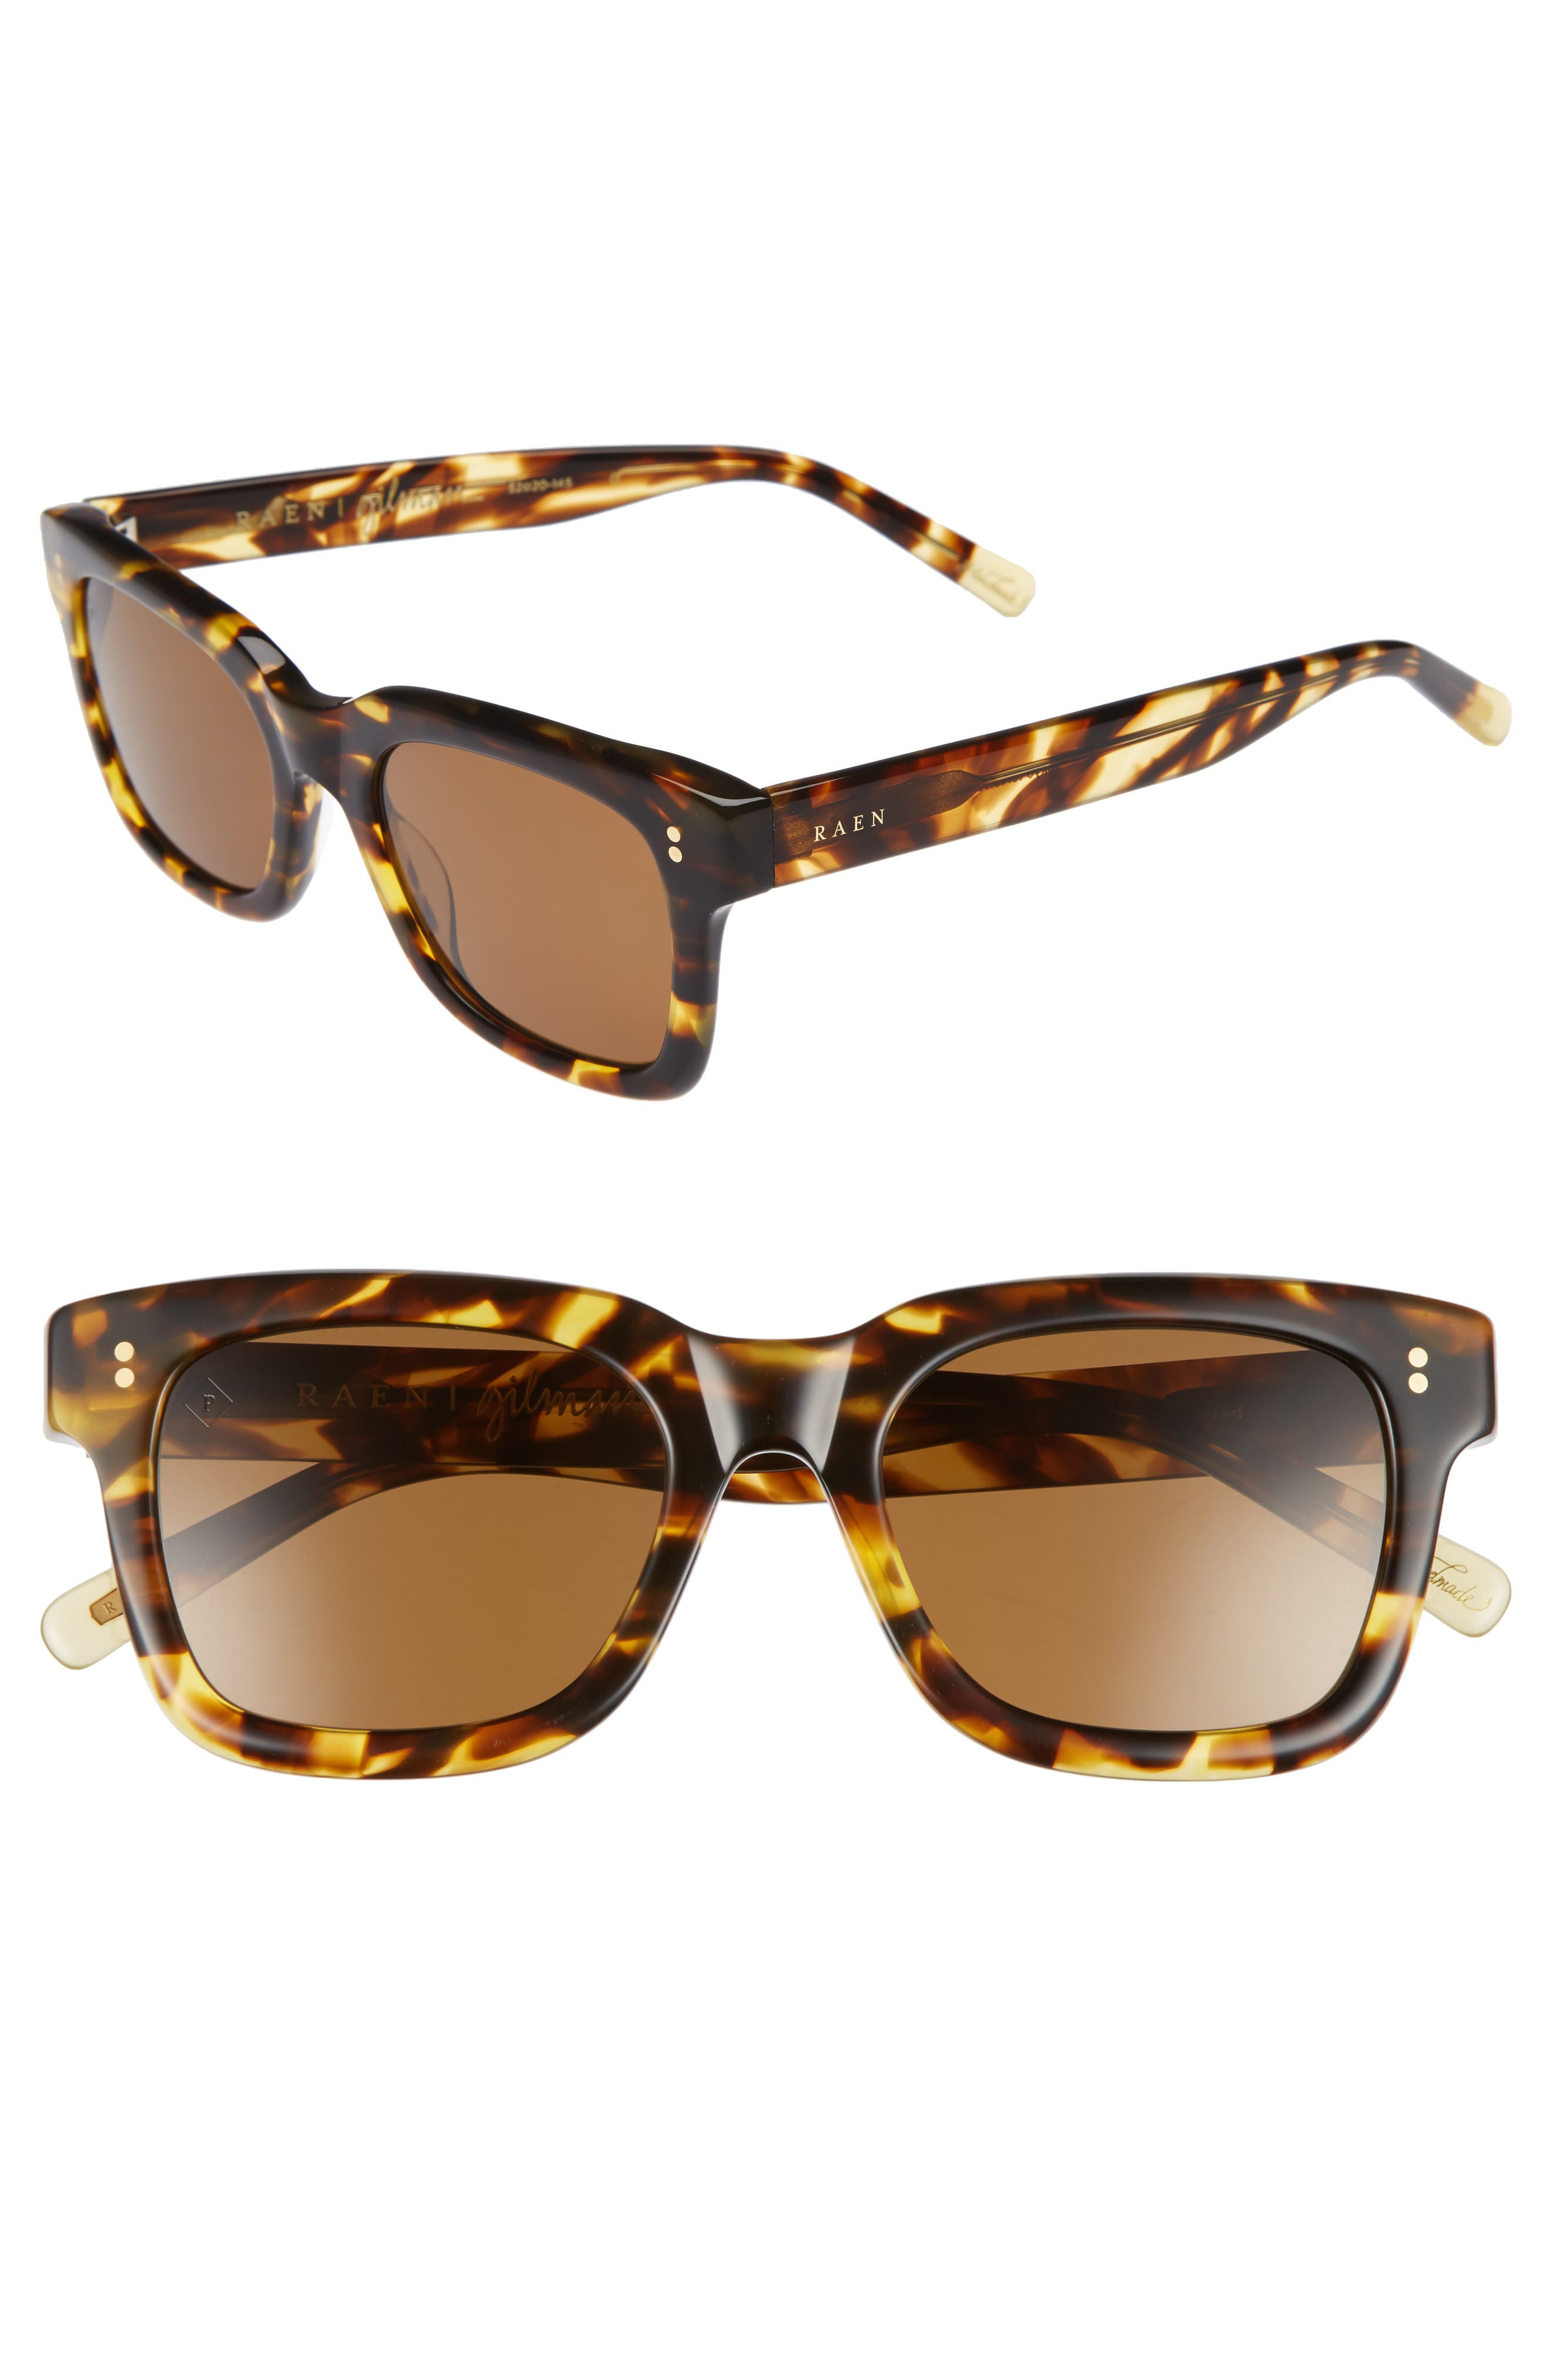 Gilman 52mm Polarized Sunglasses,                         Main,                         color, Tokyo Tortoise/ Brown